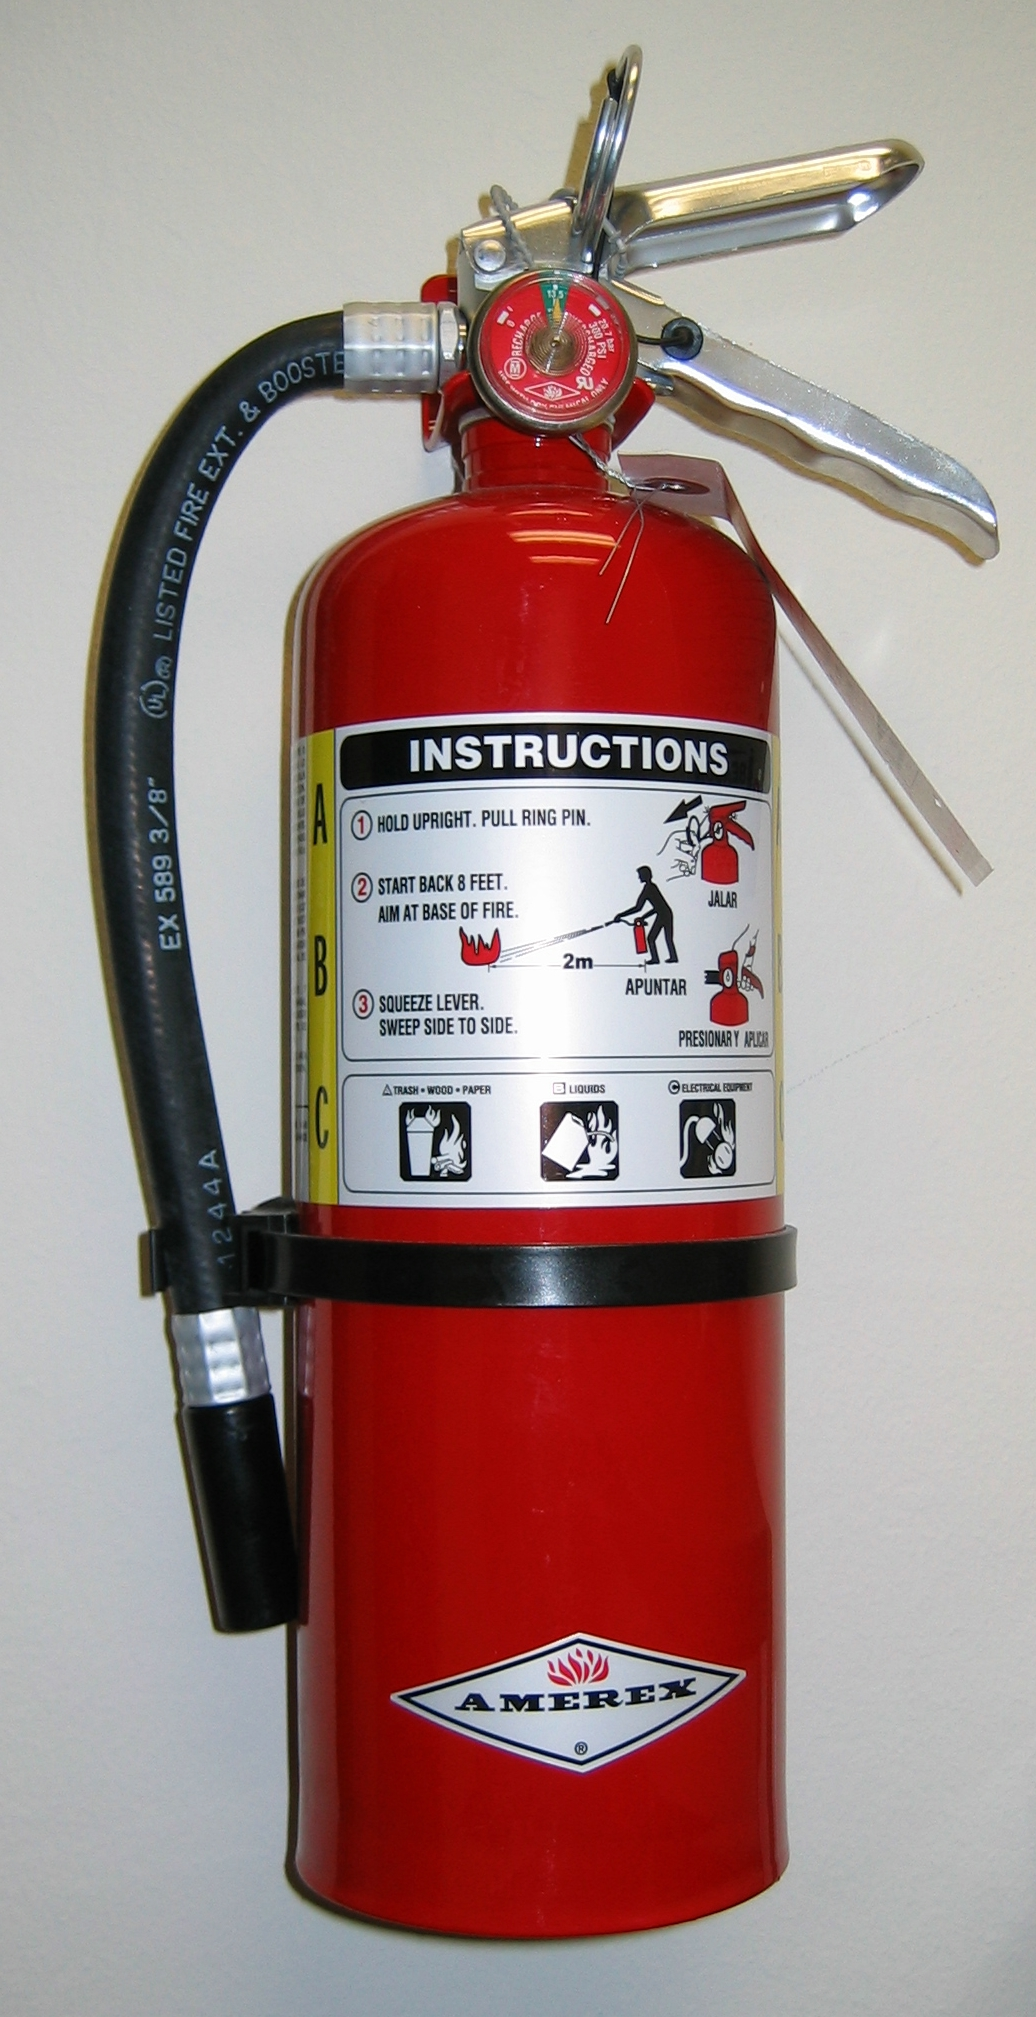 http://upload.wikimedia.org/wikipedia/commons/d/d9/FireExtinguisherABC.jpg